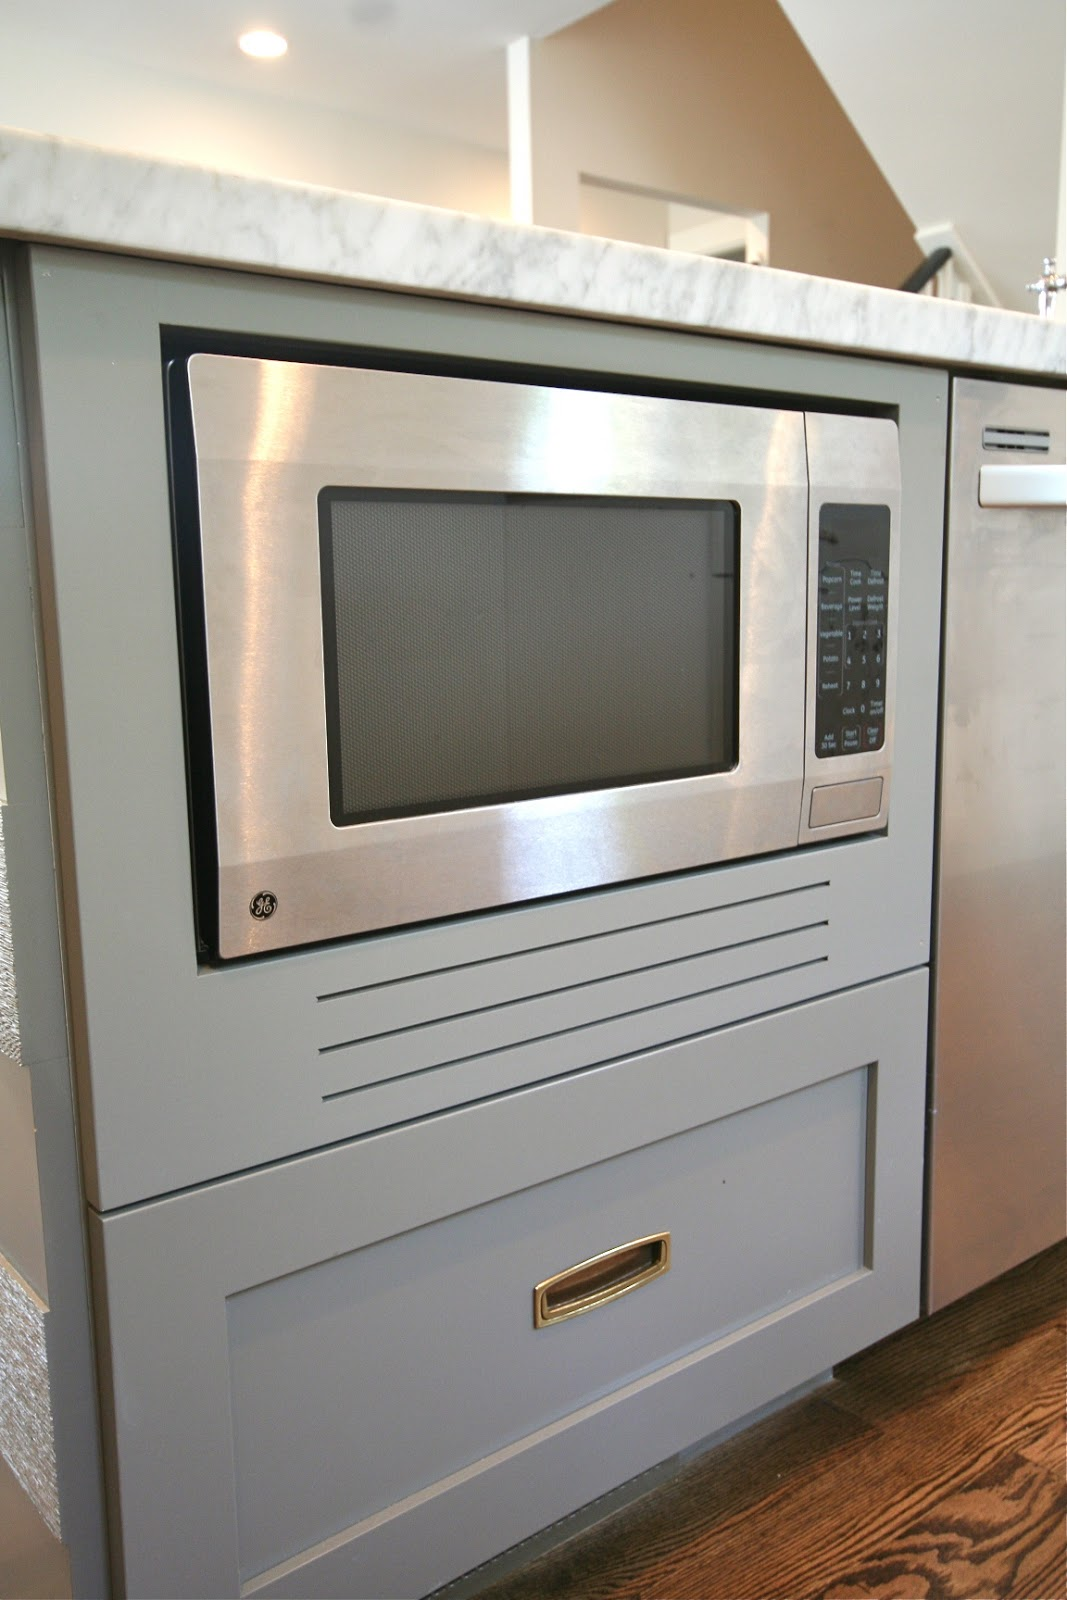 Can Countertop Microwave Be Built In : design dump: how to fake a built-in microwave